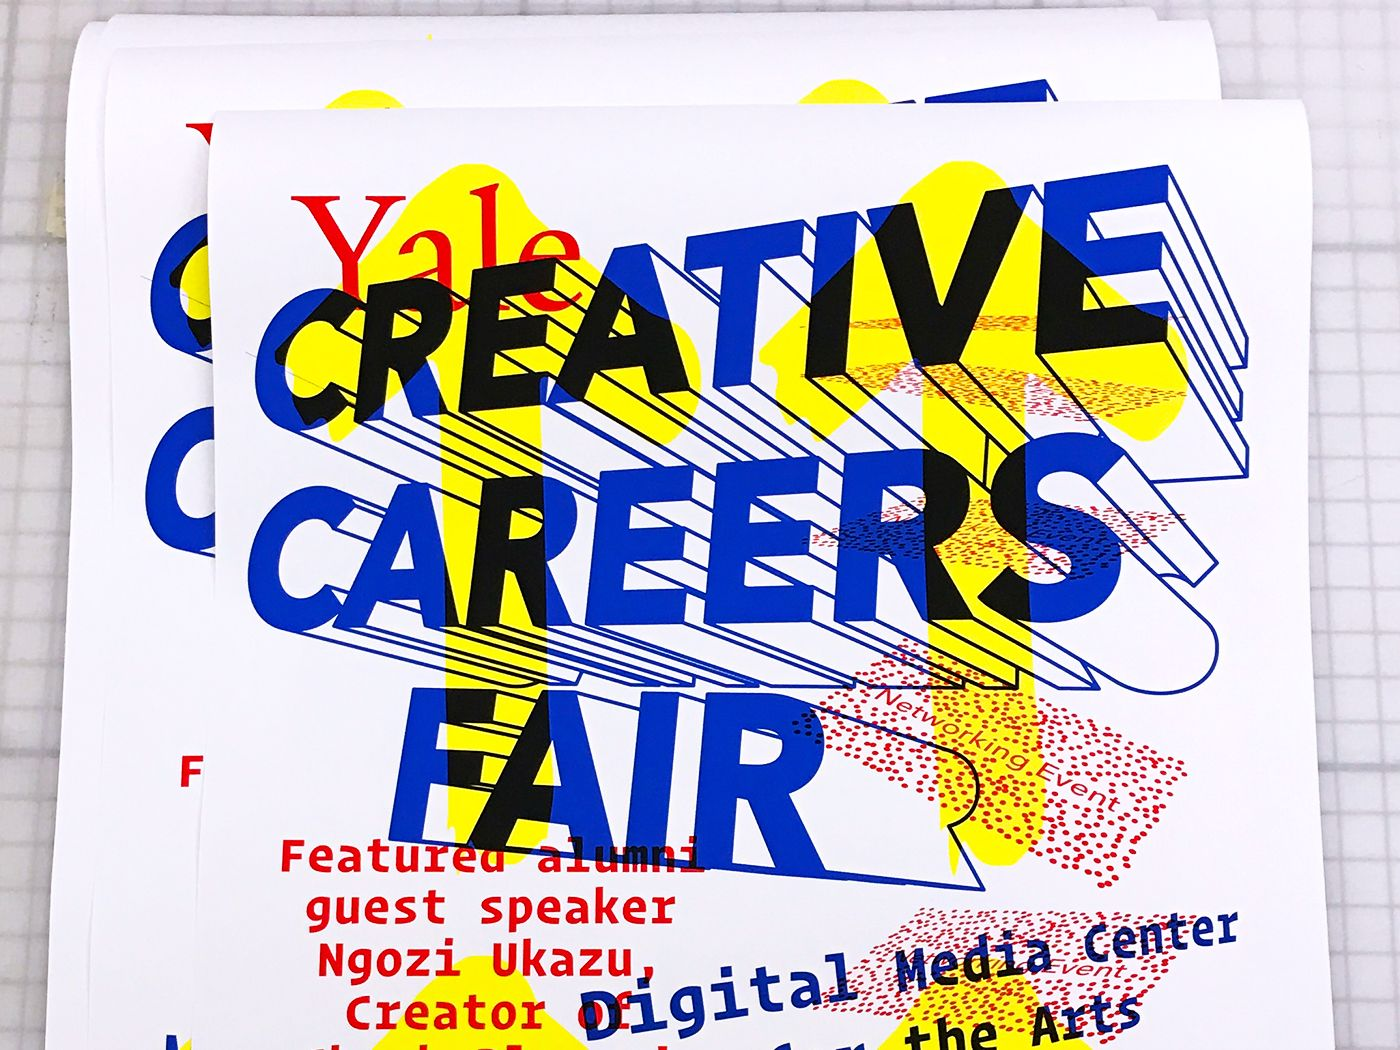 Printout of poster for Yale Creative Careers Fair by Isaac Morrier